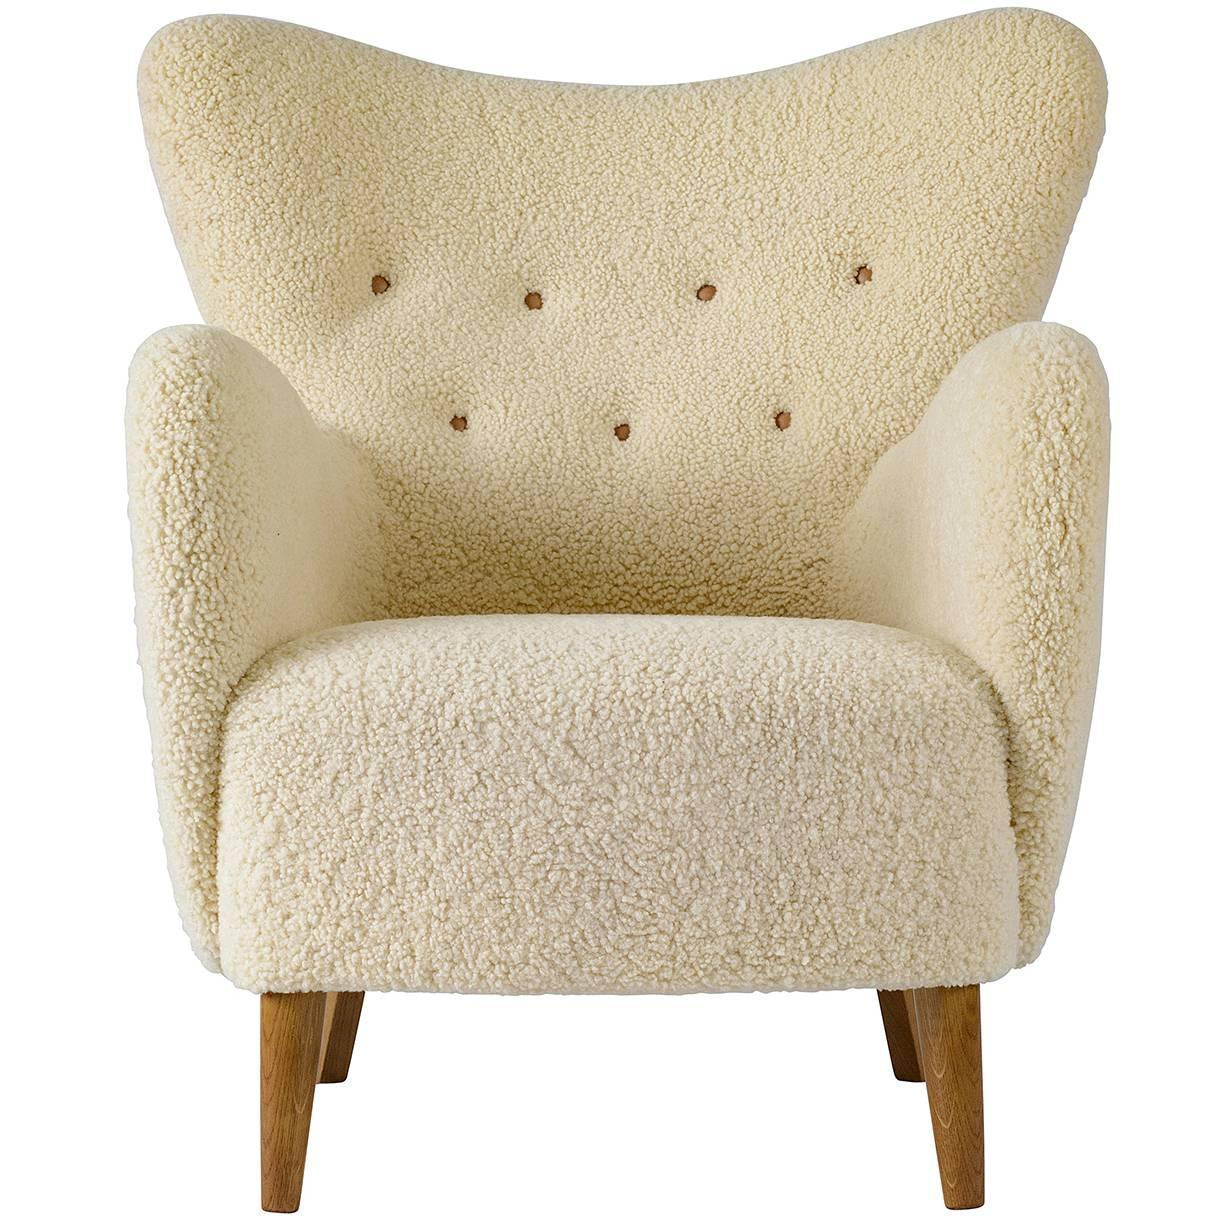 sheepskin chair covers for recliners uk coastal accent chairs scandinavian lounge sale at 1stdibs